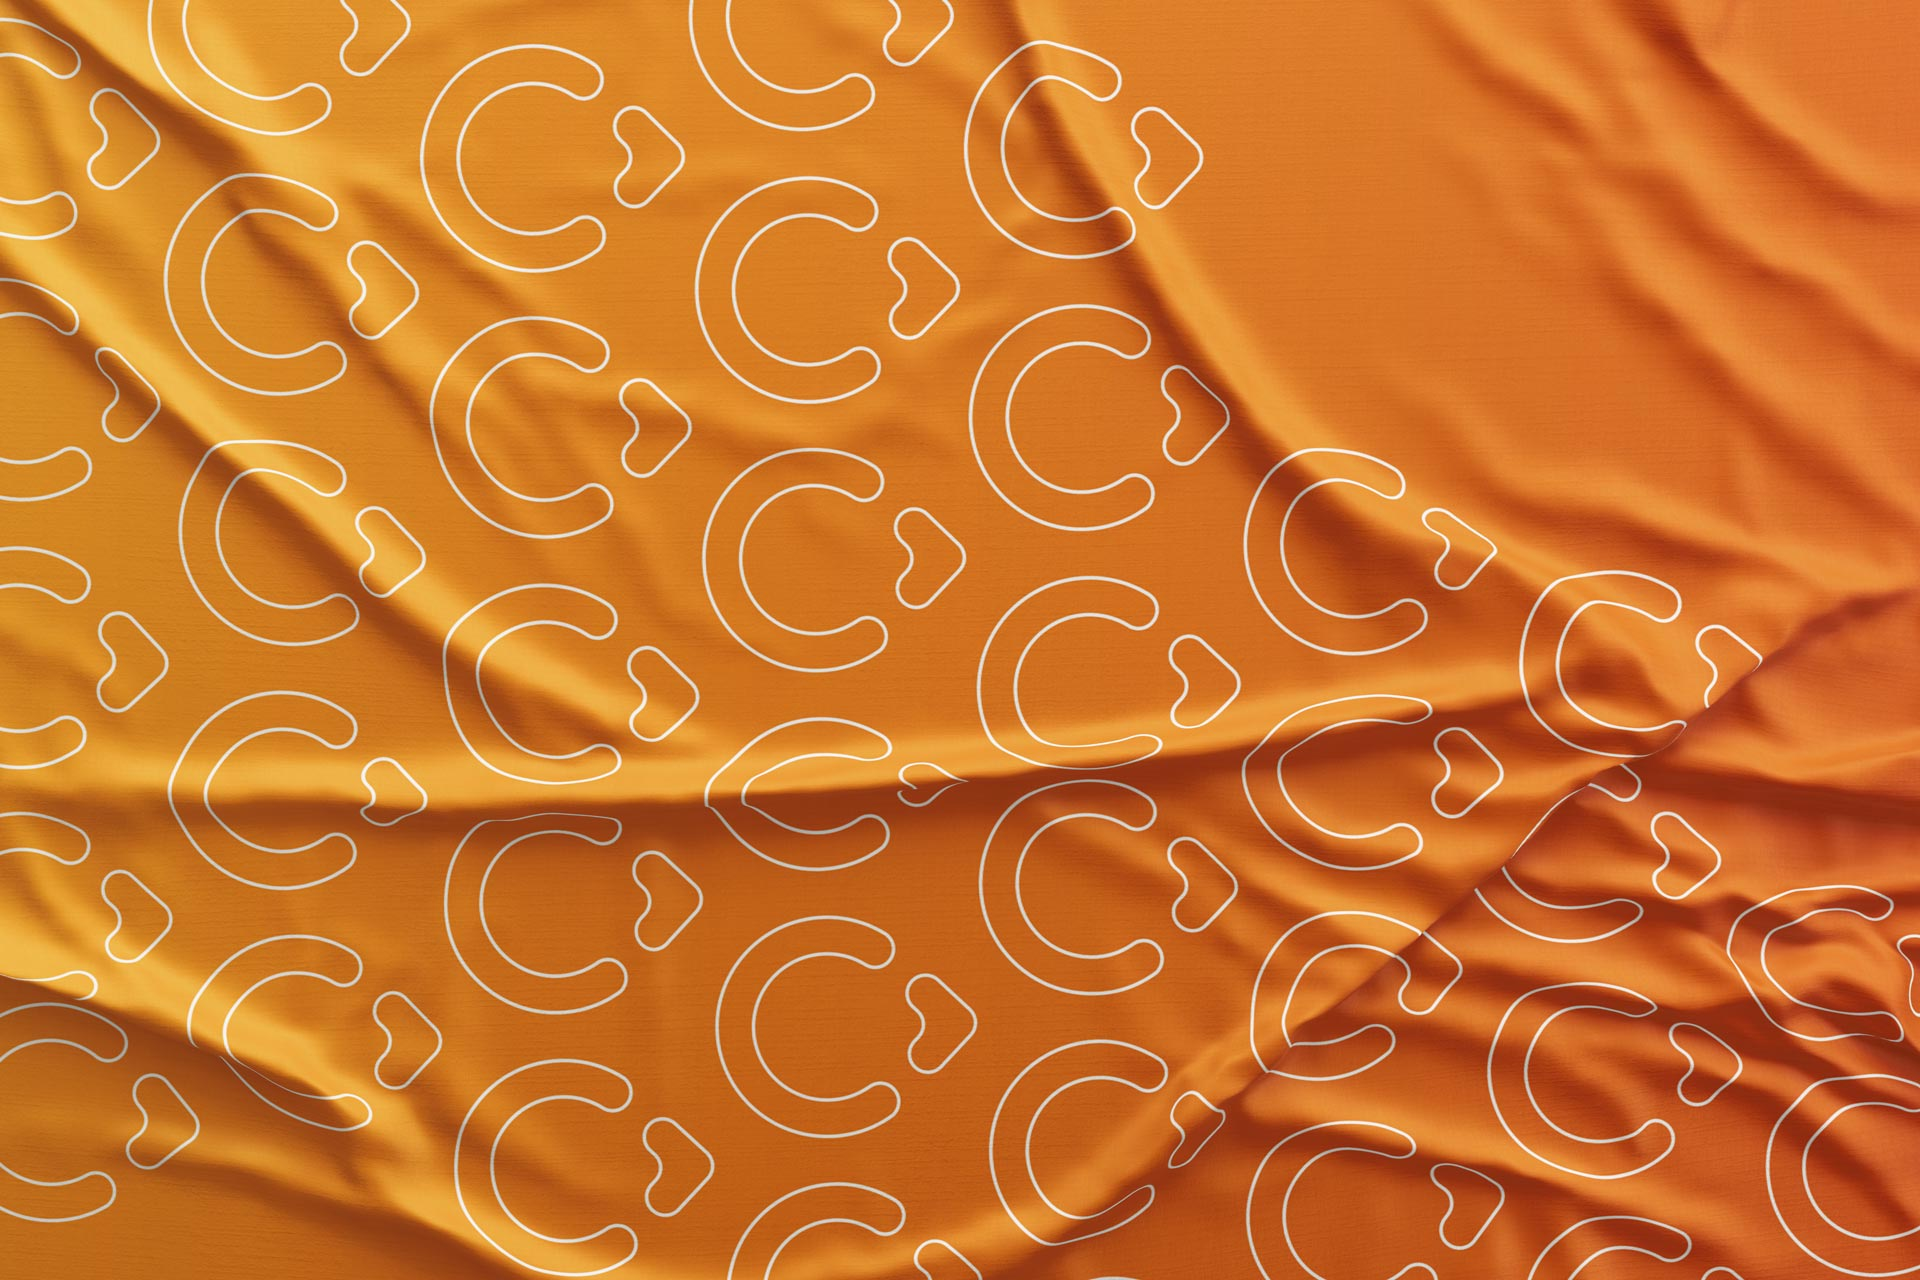 Coliving Ventures logo pattern on an organge cloth